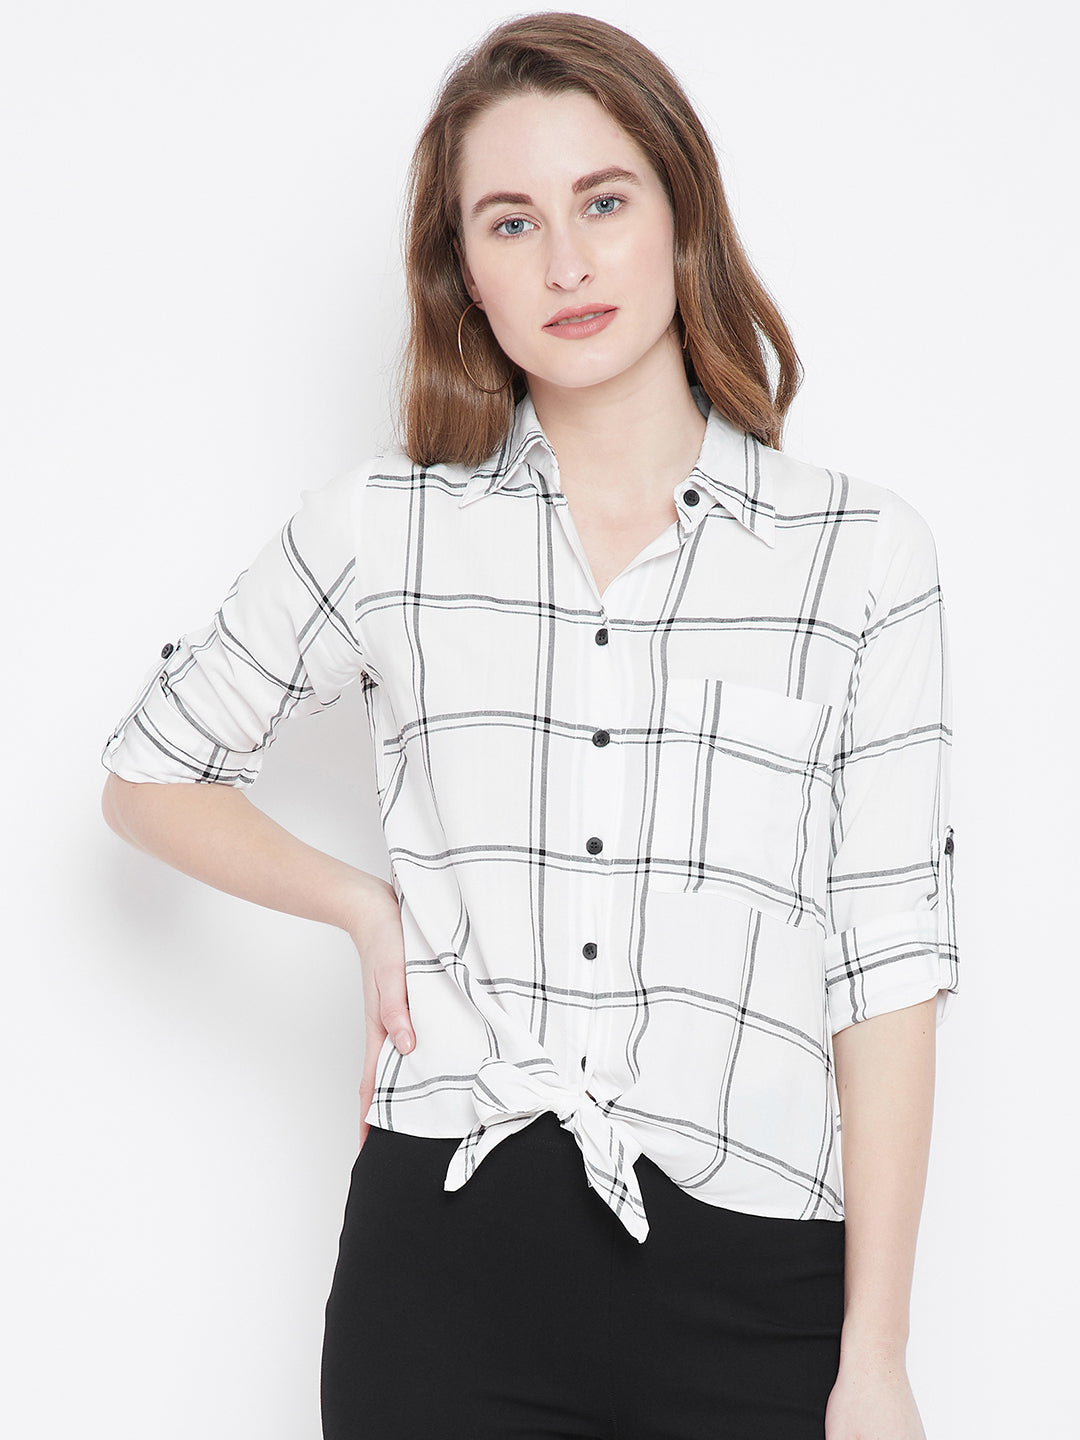 Berrylush Women White & Black Checked Shirt Style Top